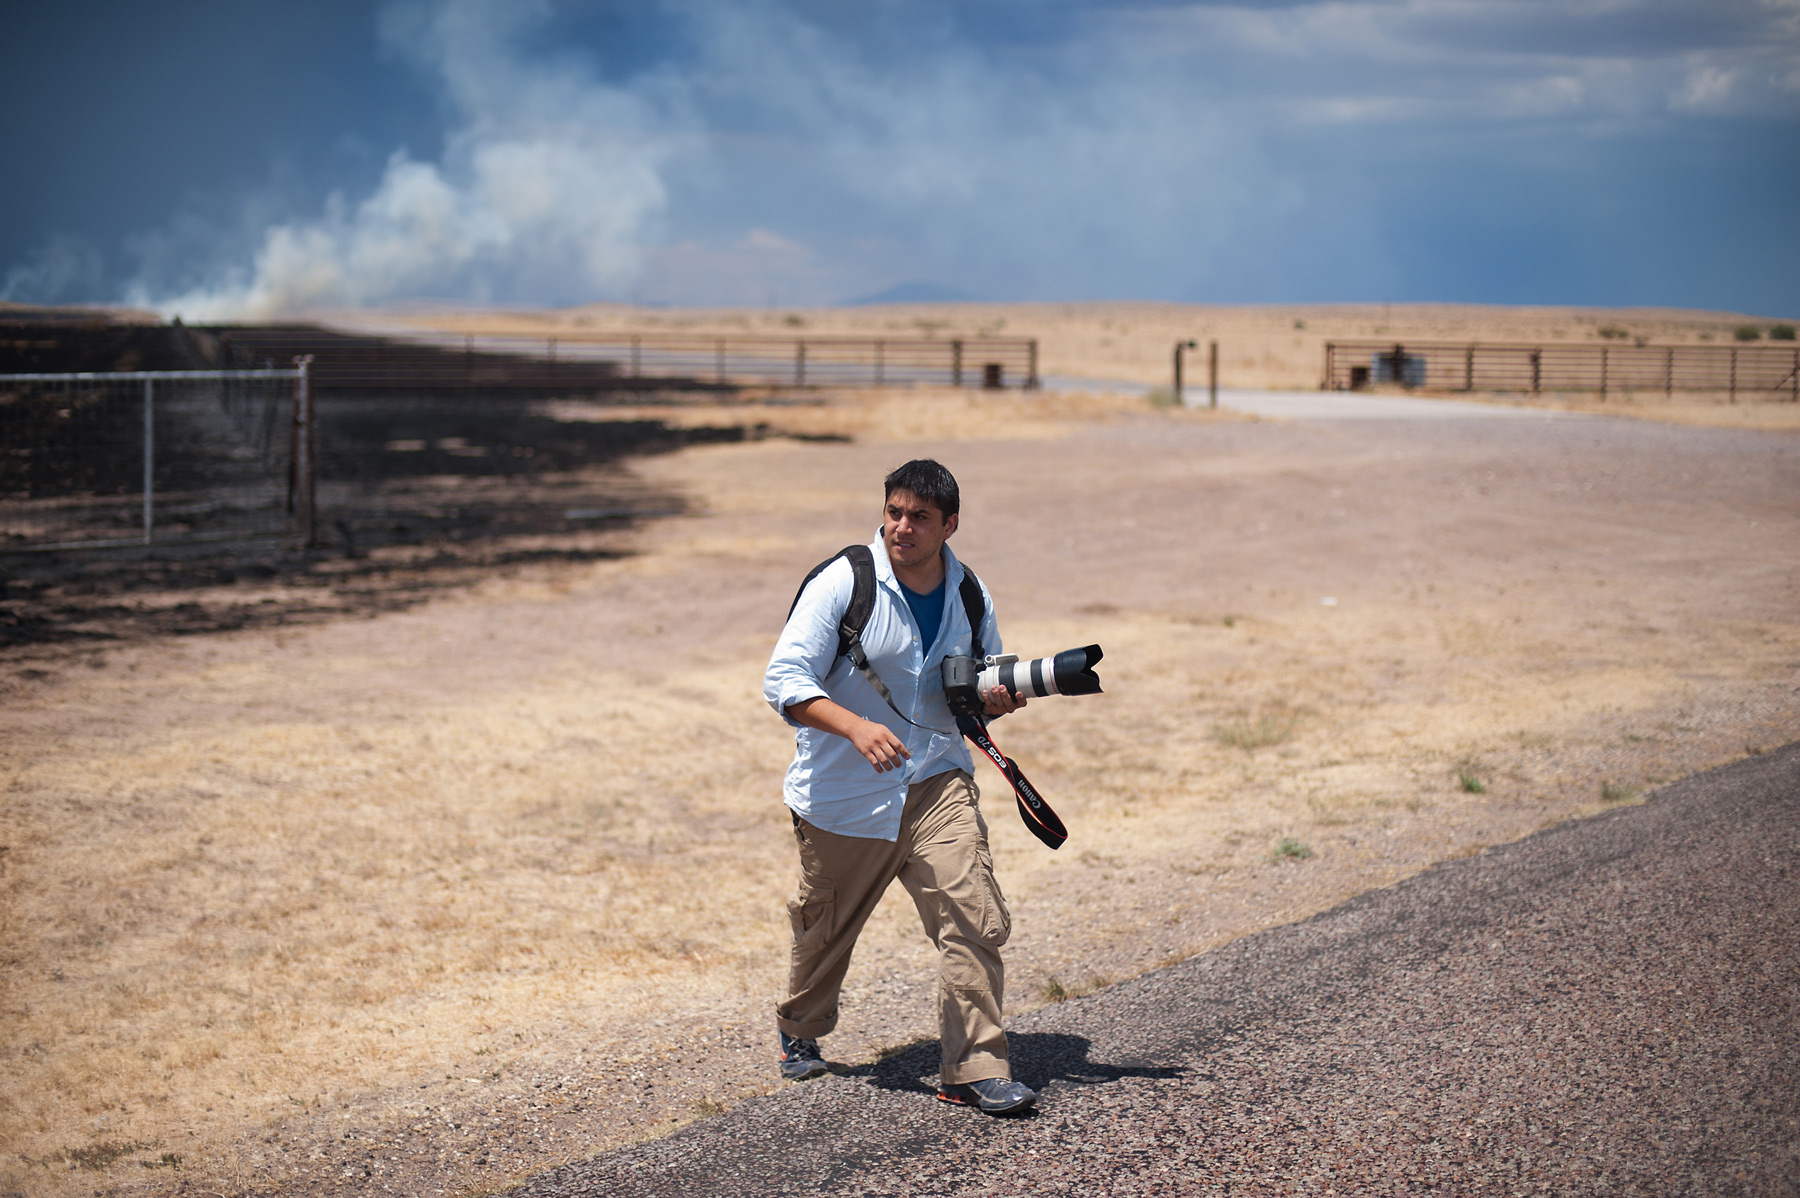 JoshuaBright_Town&Country_Deadline_WeeklyPaper_TheBigBendSentinel_Marfa_Texas_photojournalist_color